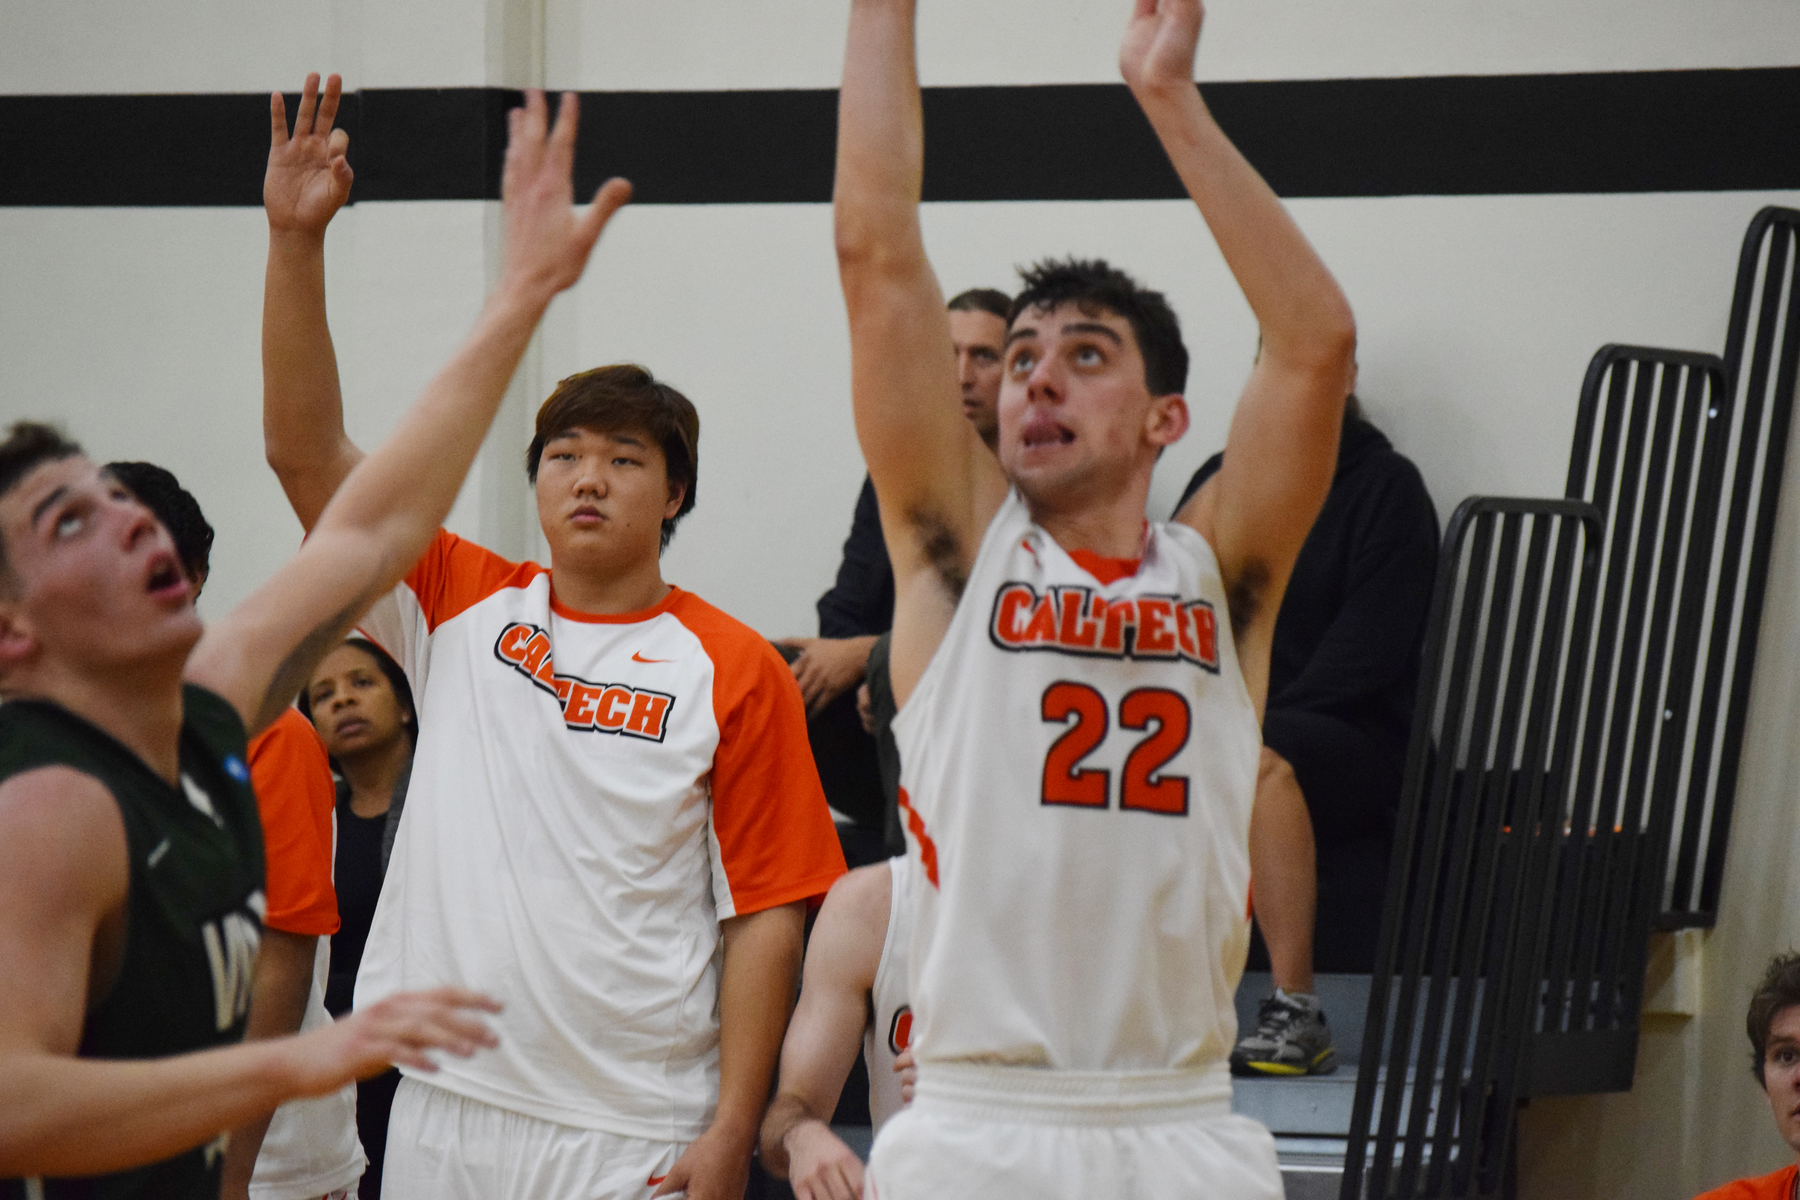 Galliani Just Shy of First Double-Double at Pacific